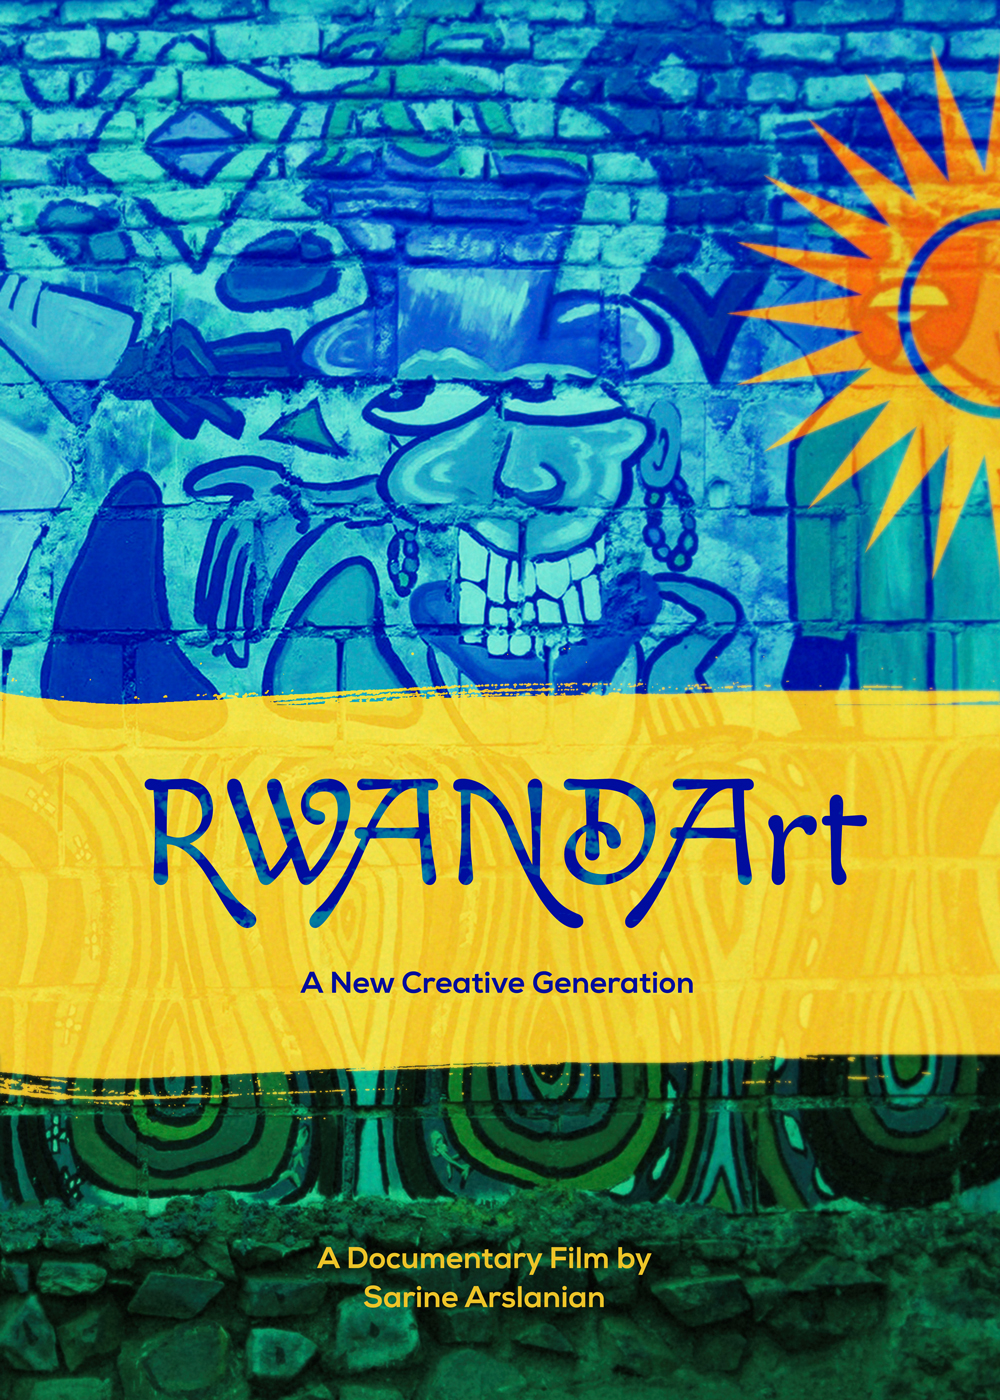 IN THE PRESS - TRUE Africa: Rwanda is about more than its past (or Kagame): http://trueafrica.co/article/the-creatives-forging-rwandas-future/LifeGate: RWANDArt, the documentary about young creatives putting Rwanda on the map: http://www.lifegate.com/people/news/rwandart-documentaryAfricavivre: RWANDART : le bouillonnement artistique rwandais: https://www.africavivre.com/rwanda/a-voir/documentaires/rwandart-le-bouillonnement-artistique-rwandais.htmlUK Visual Anthropology: RWANDArt-Alumni Sarine Arslanian shares her latest project: https://ukvisualanthropology.com/2017/06/23/rwandart/Igihe: Iserukiramuco Rwanda Film Festival rigiye kubera muri Convention Center: http://www.igihe.com/imyidagaduro/sinema/article/iserukiramuco-rwanda-film-festival-rigiye-kubera-muri-convention-center